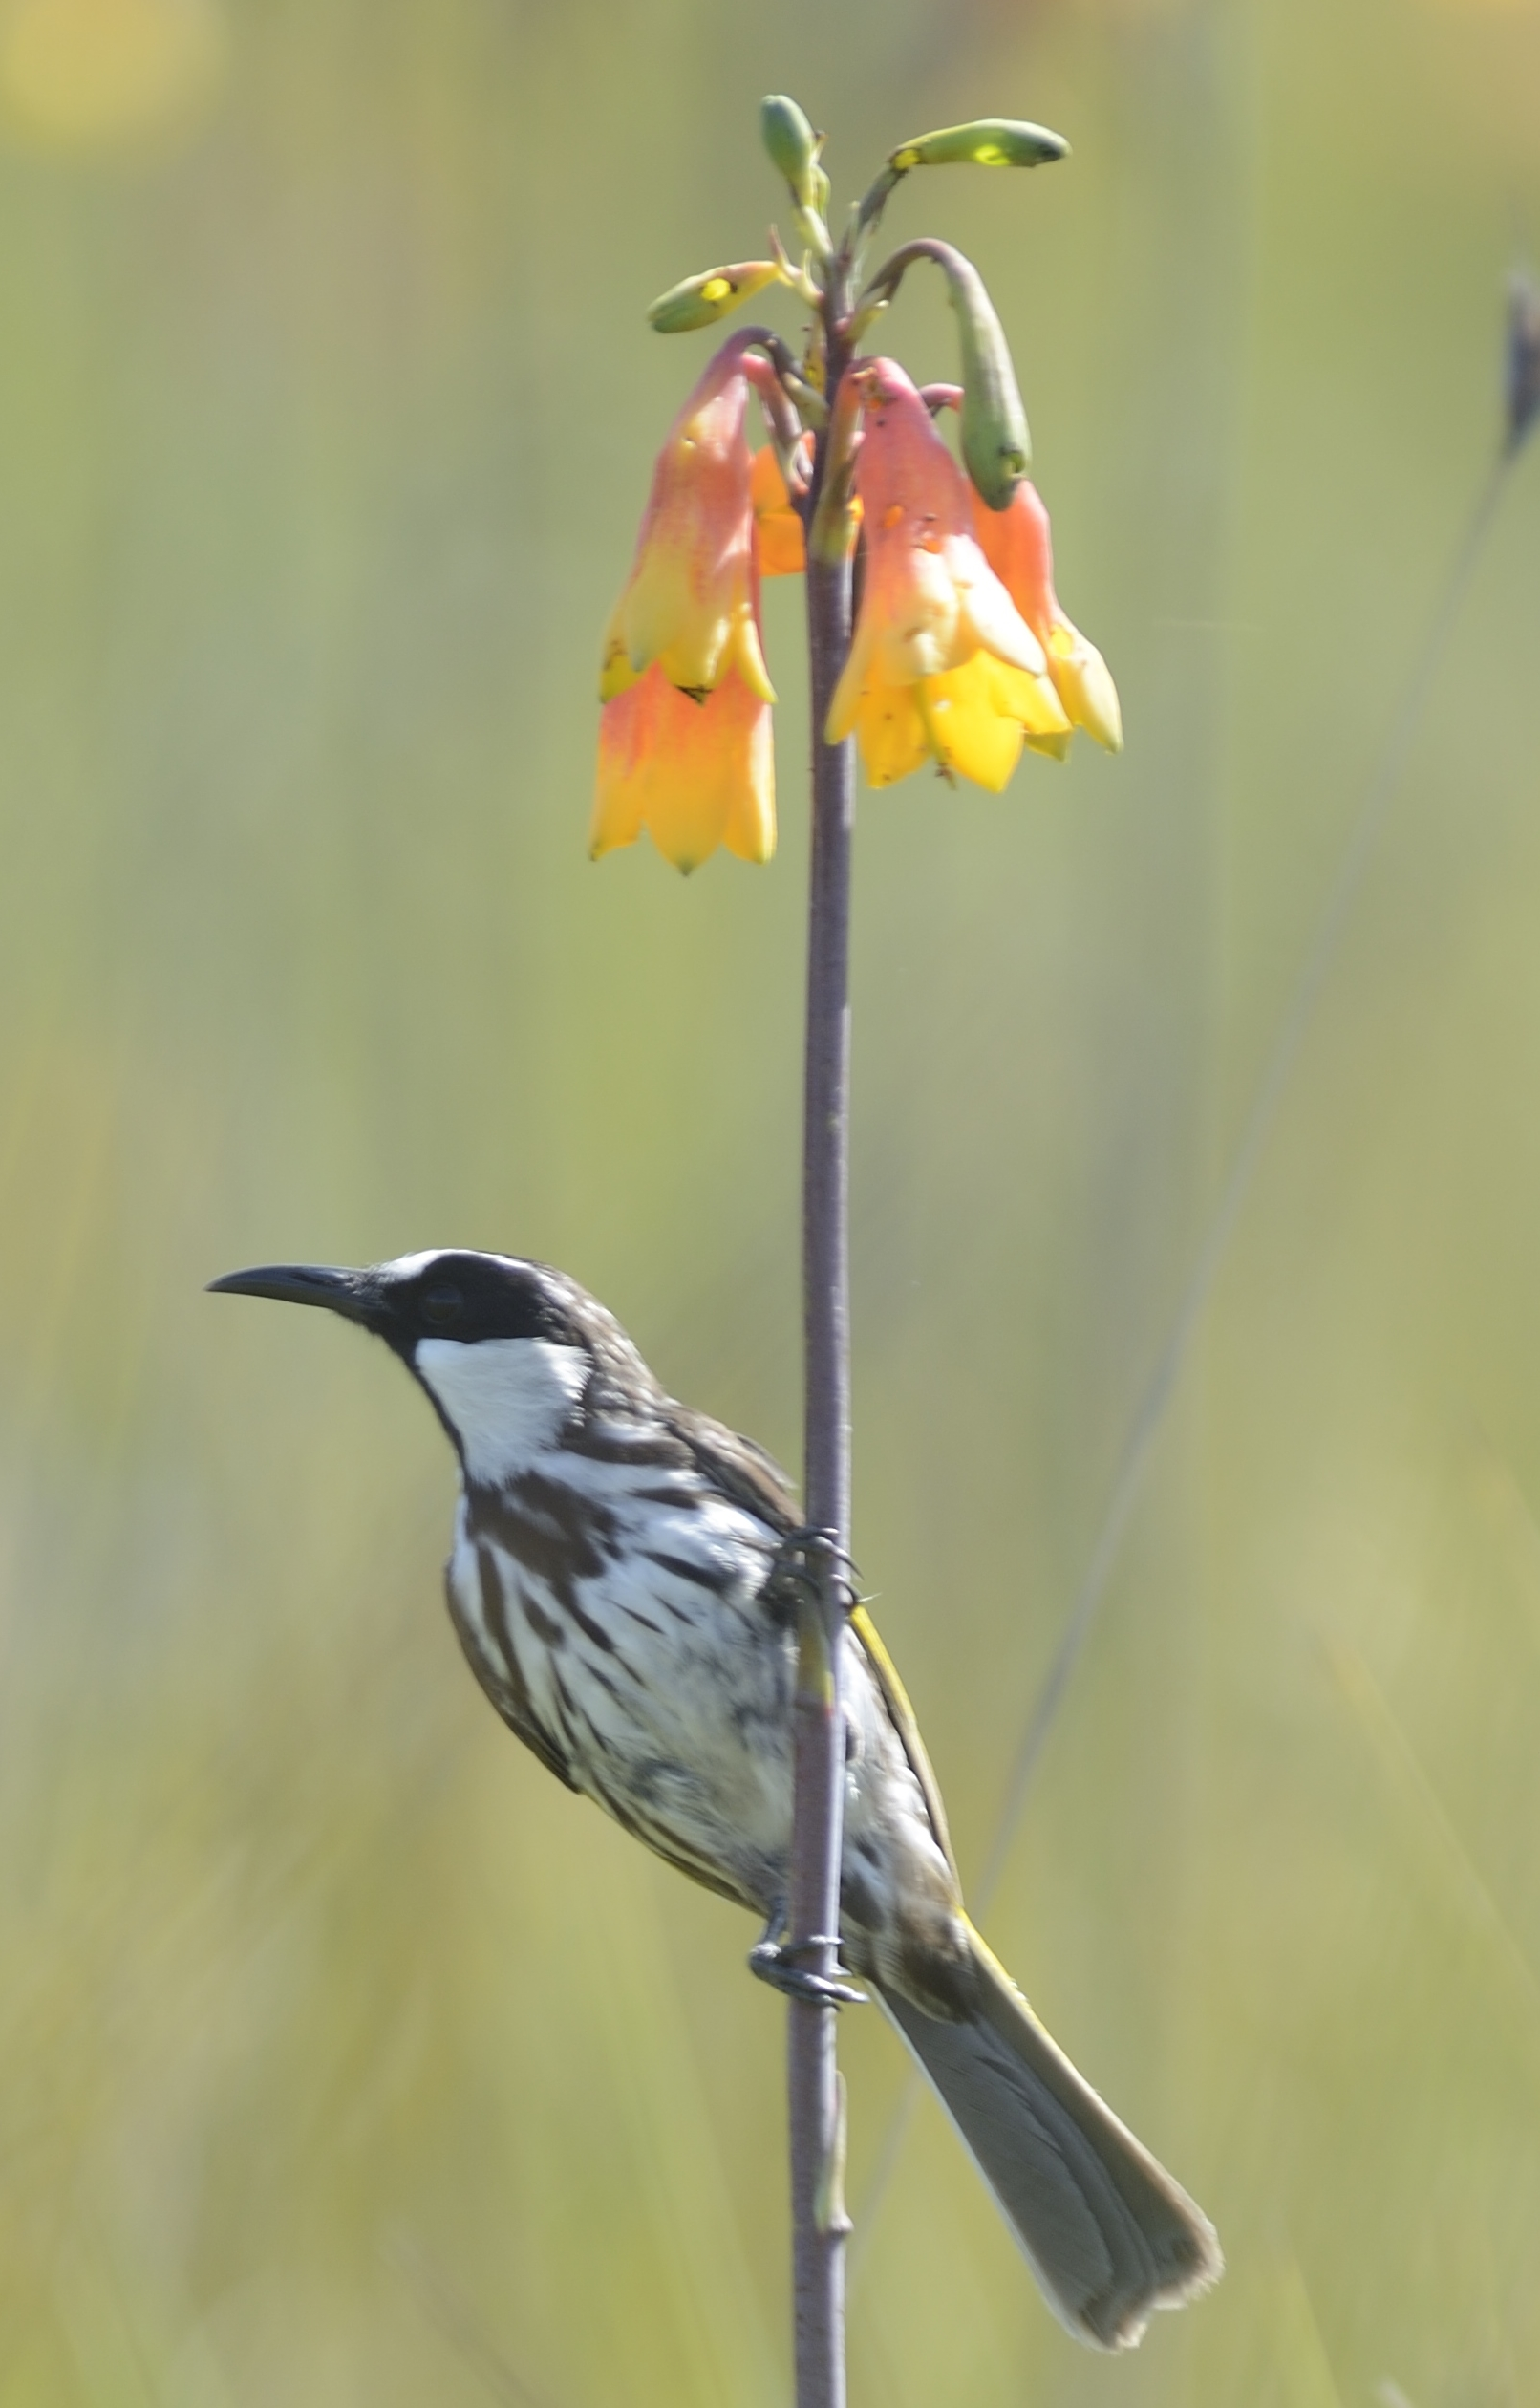 Research subjects near Pt Macquarie, NSW: White-cheeked Honeyeater nectaring at Christmas Bells (Blandfordia grandiflora)